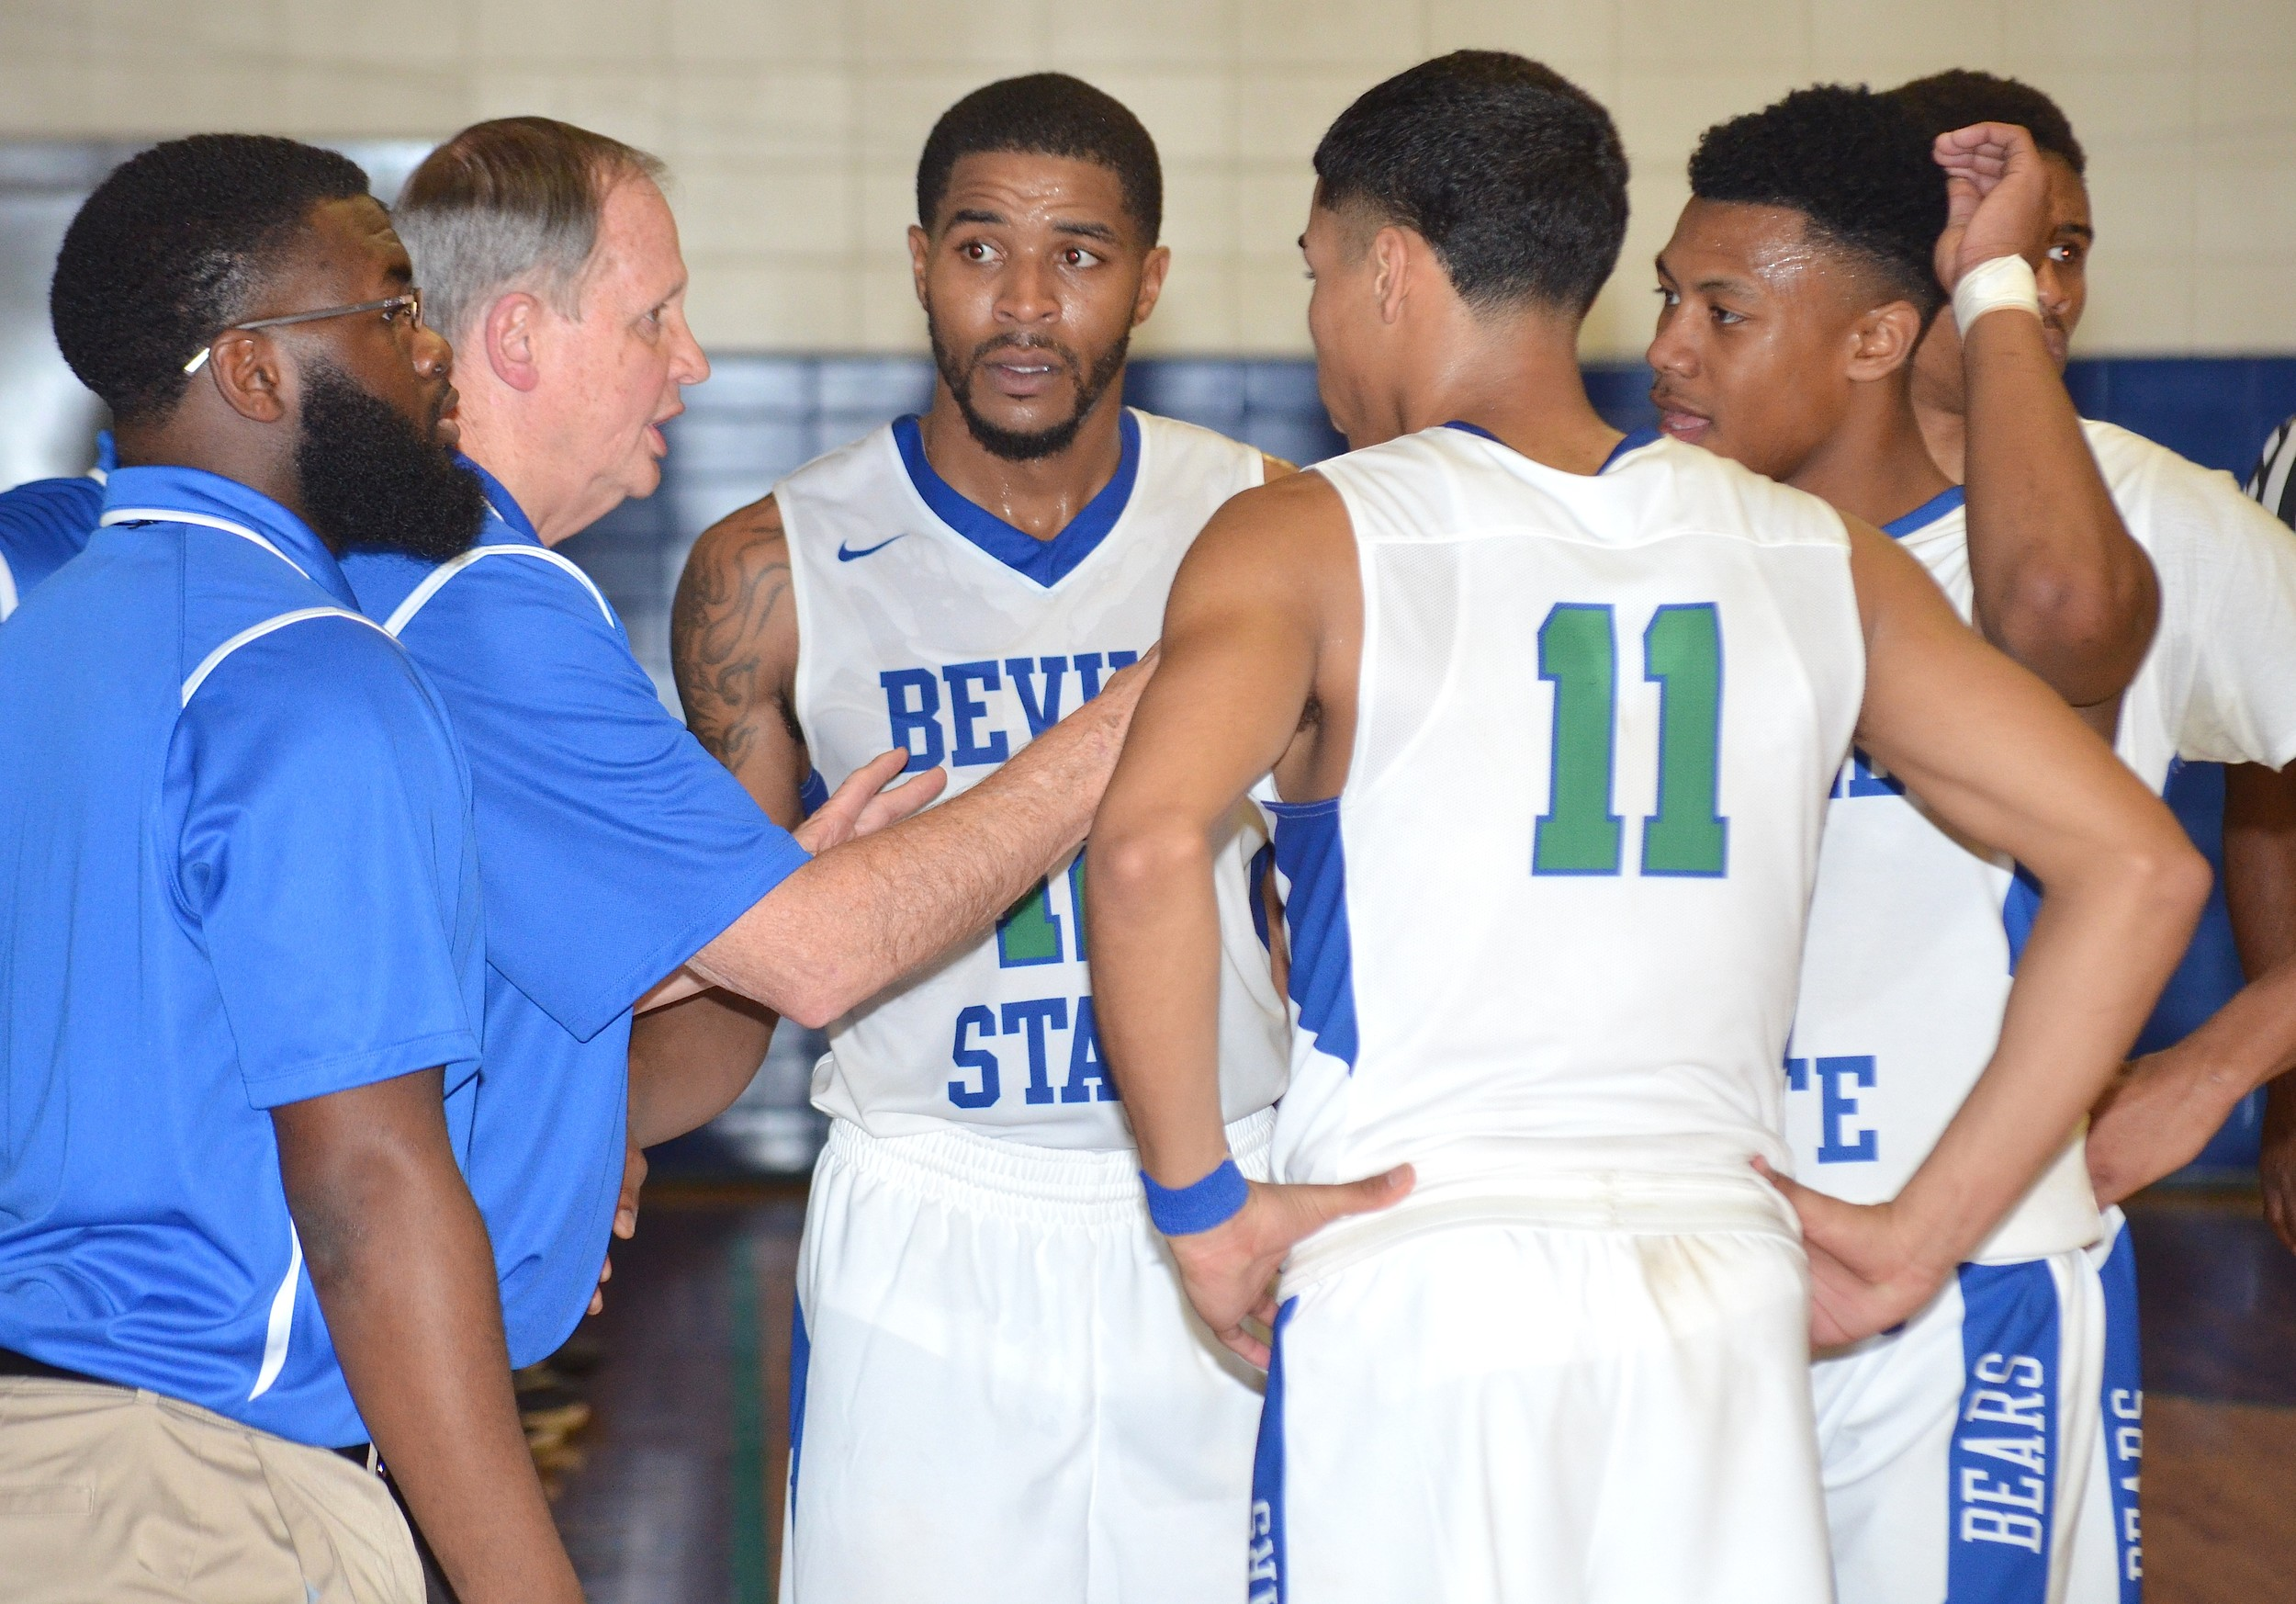 Bevill State coach Tommy Suitts talks to his team during a timeout in Monday's game against Lawson State. The Bears earned a 66-63 victory.